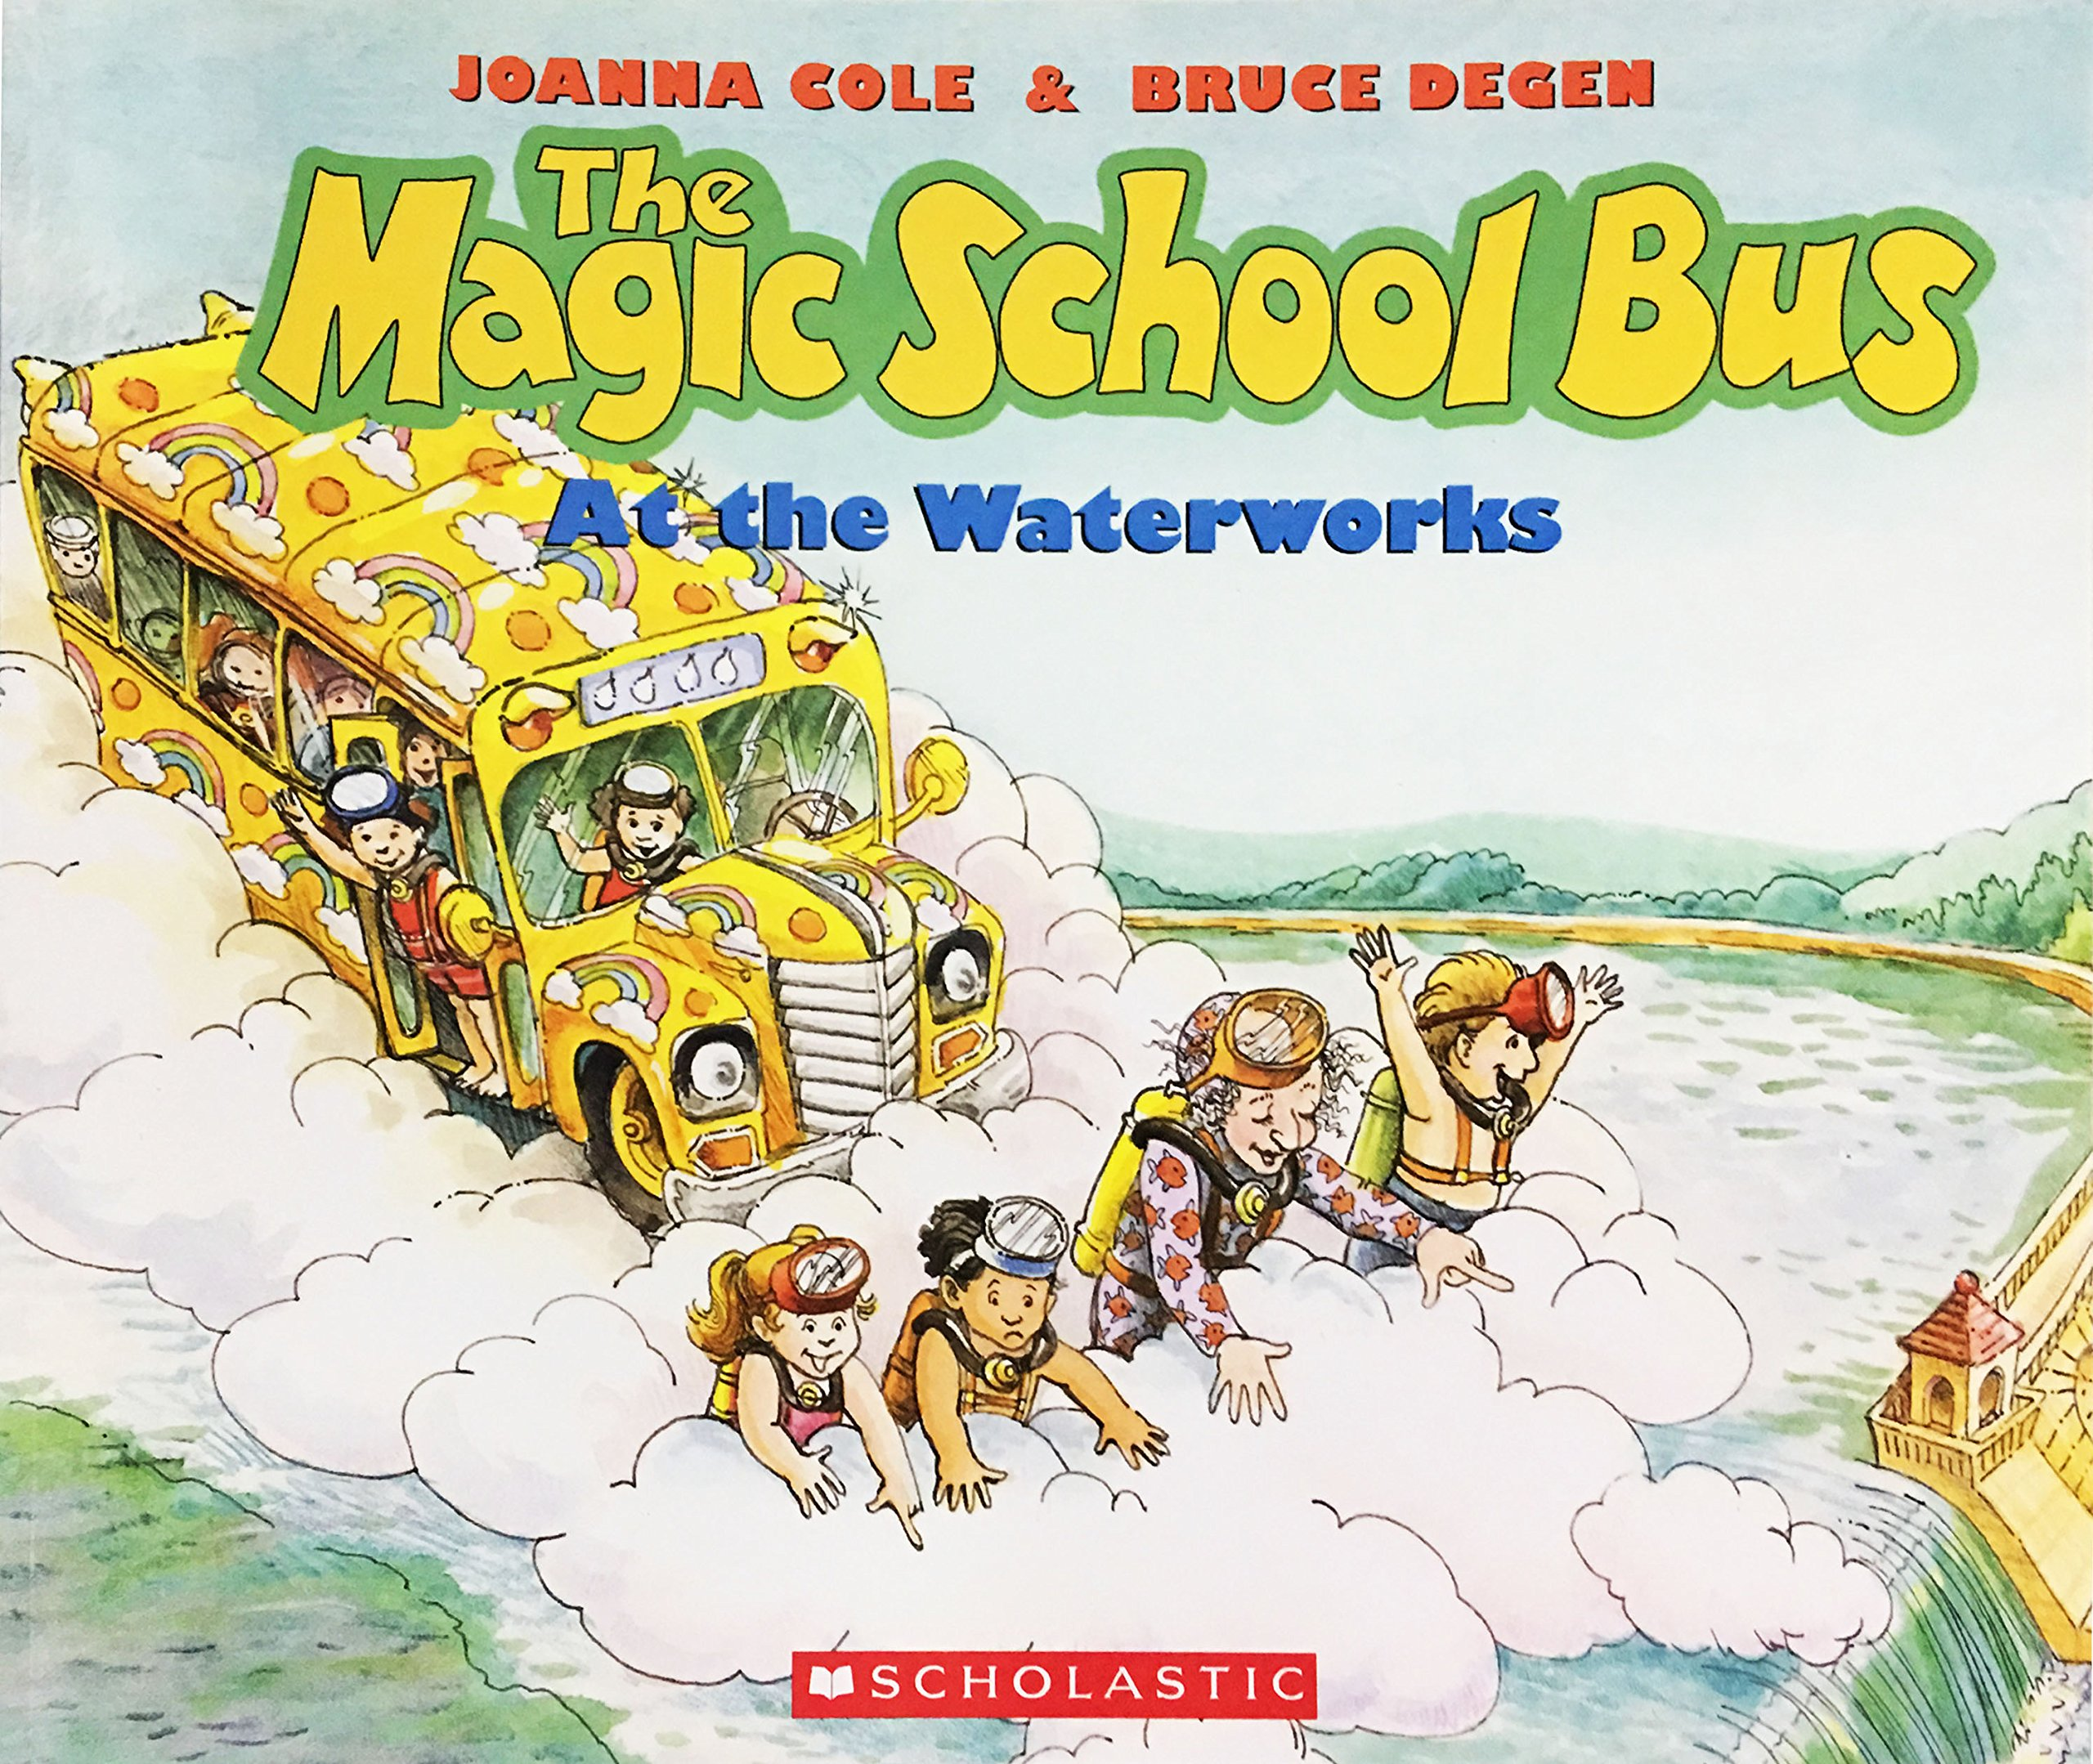 amazon the magic school bus at the waterworks joanna cole bruce